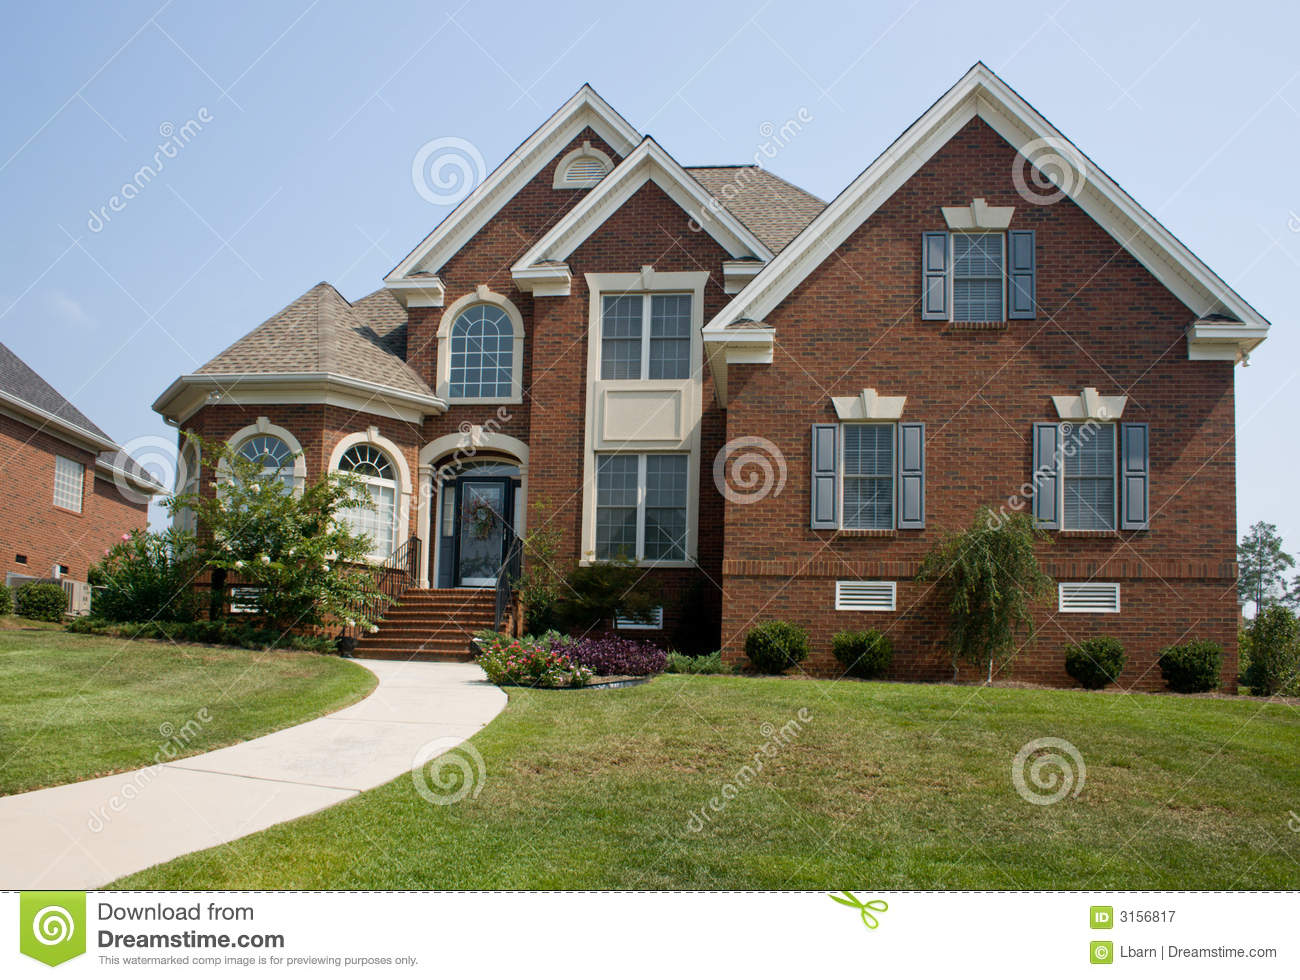 Custom Brick Home Royalty Free Stock Photography Image